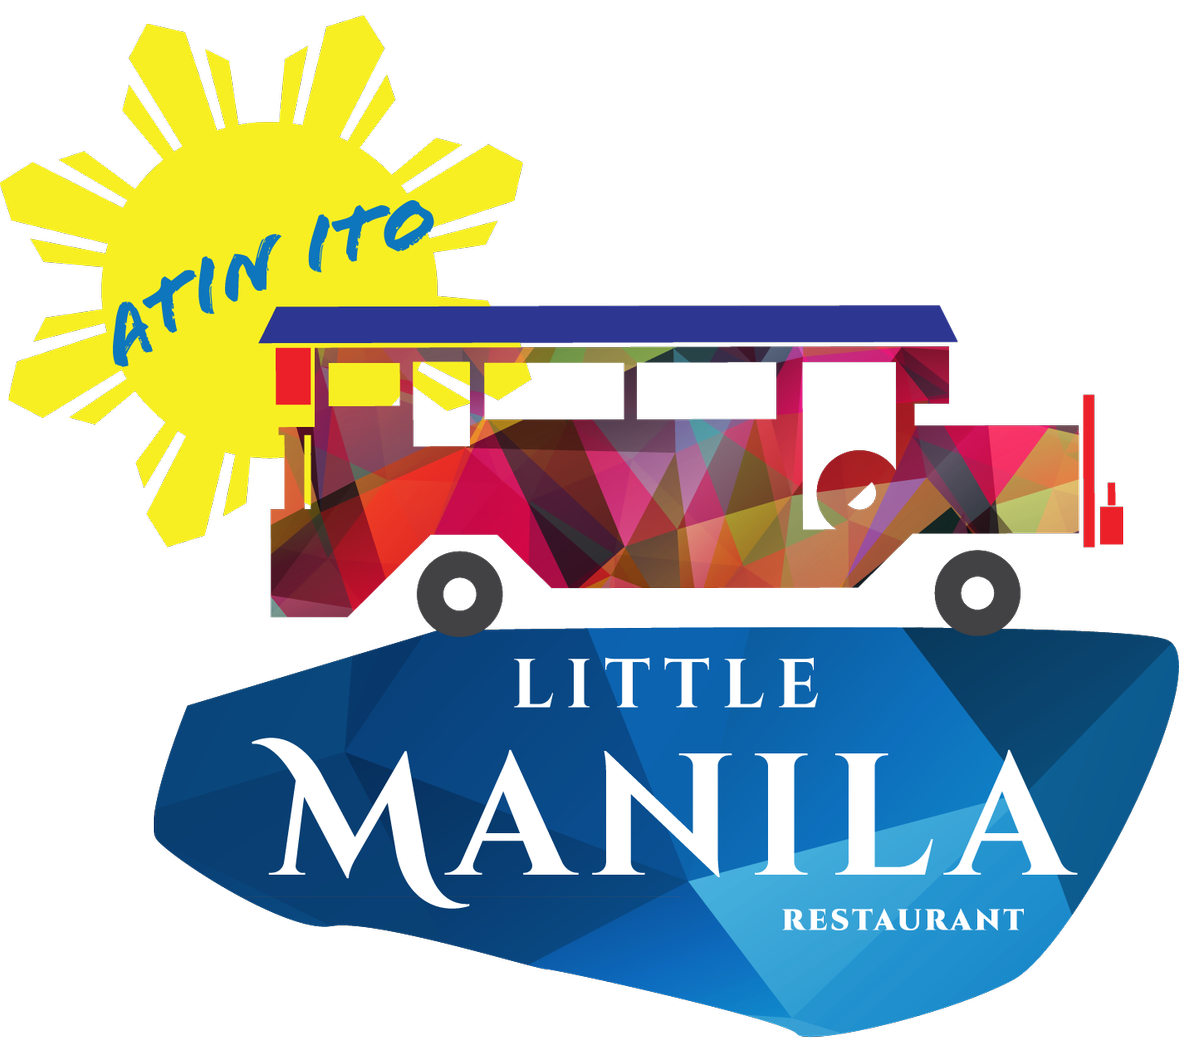 Little manila on twitter. Manager clipart brand manager